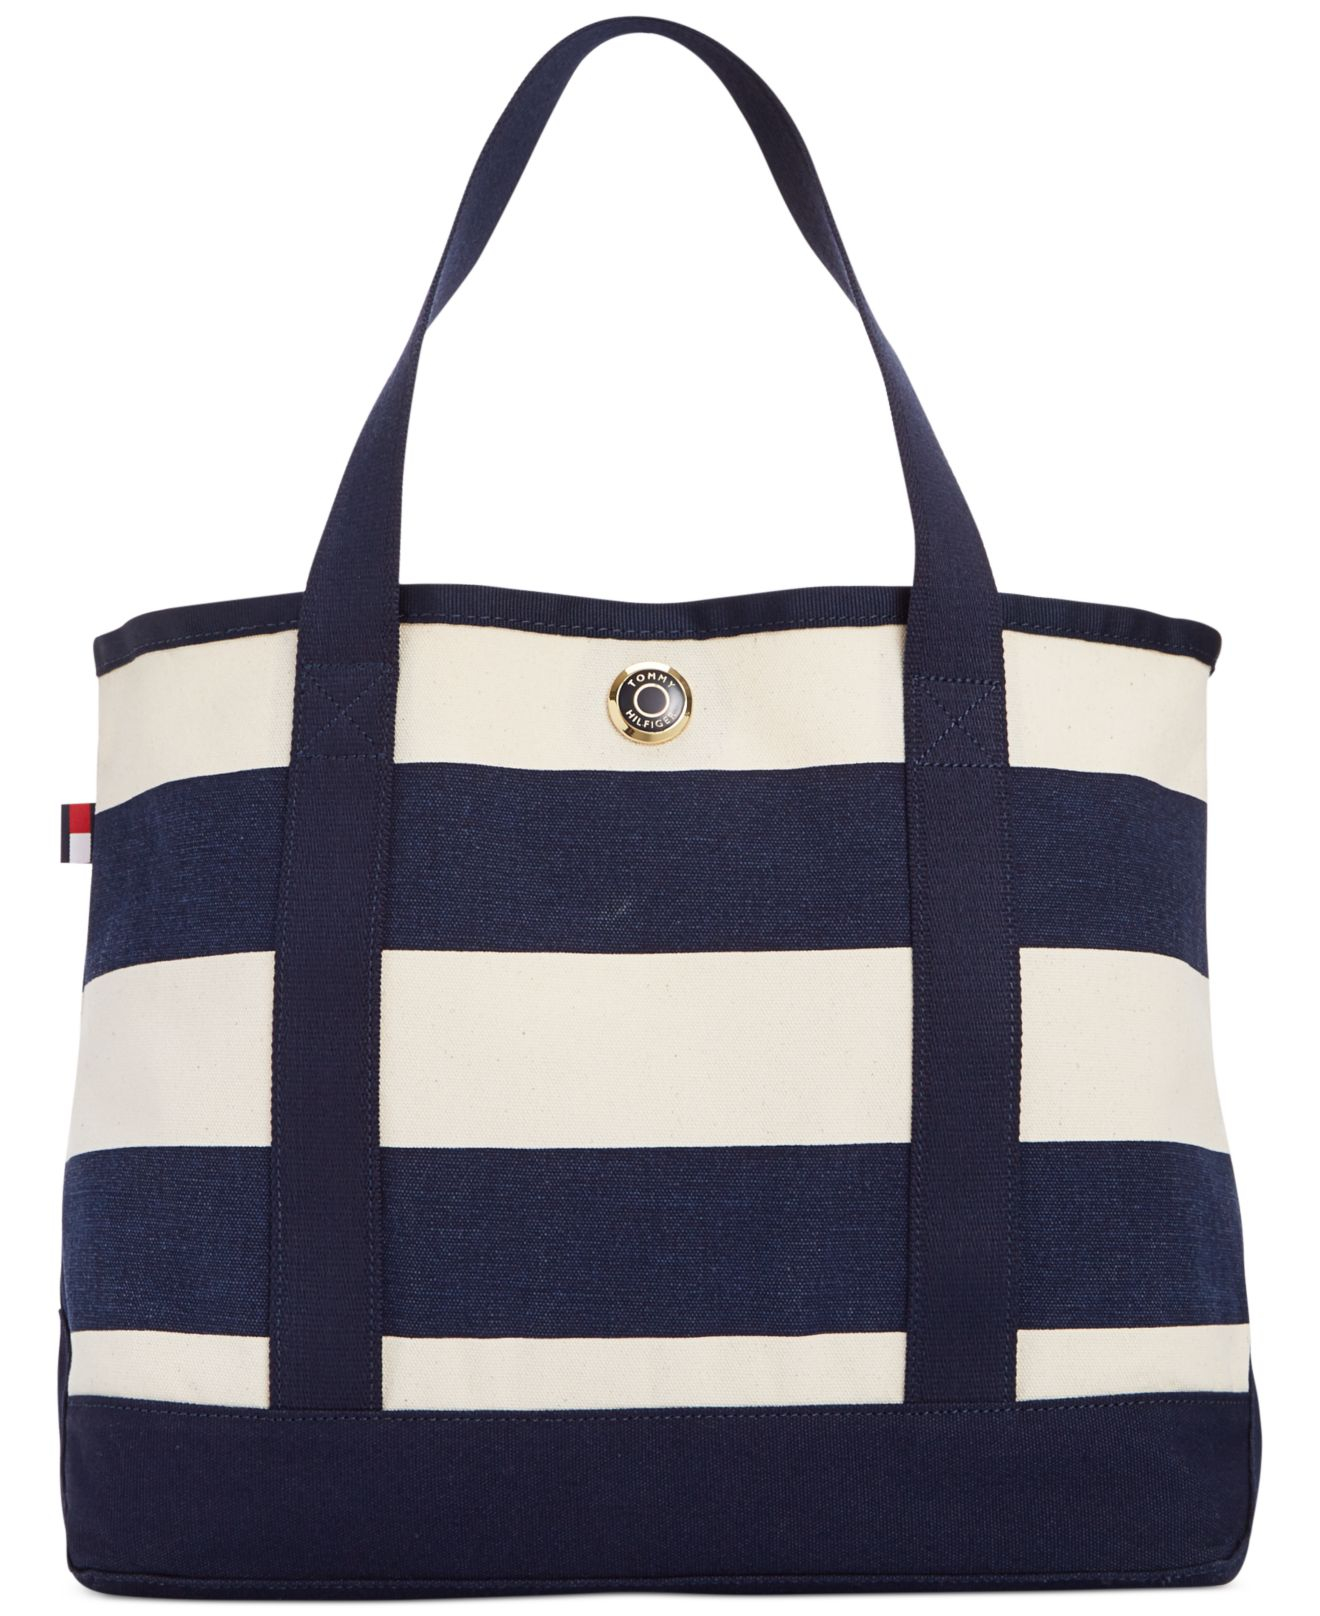 5cc757cf02 Tommy Hilfiger Th Totes Woven Rugby Stripe Small Tote in Blue - Lyst